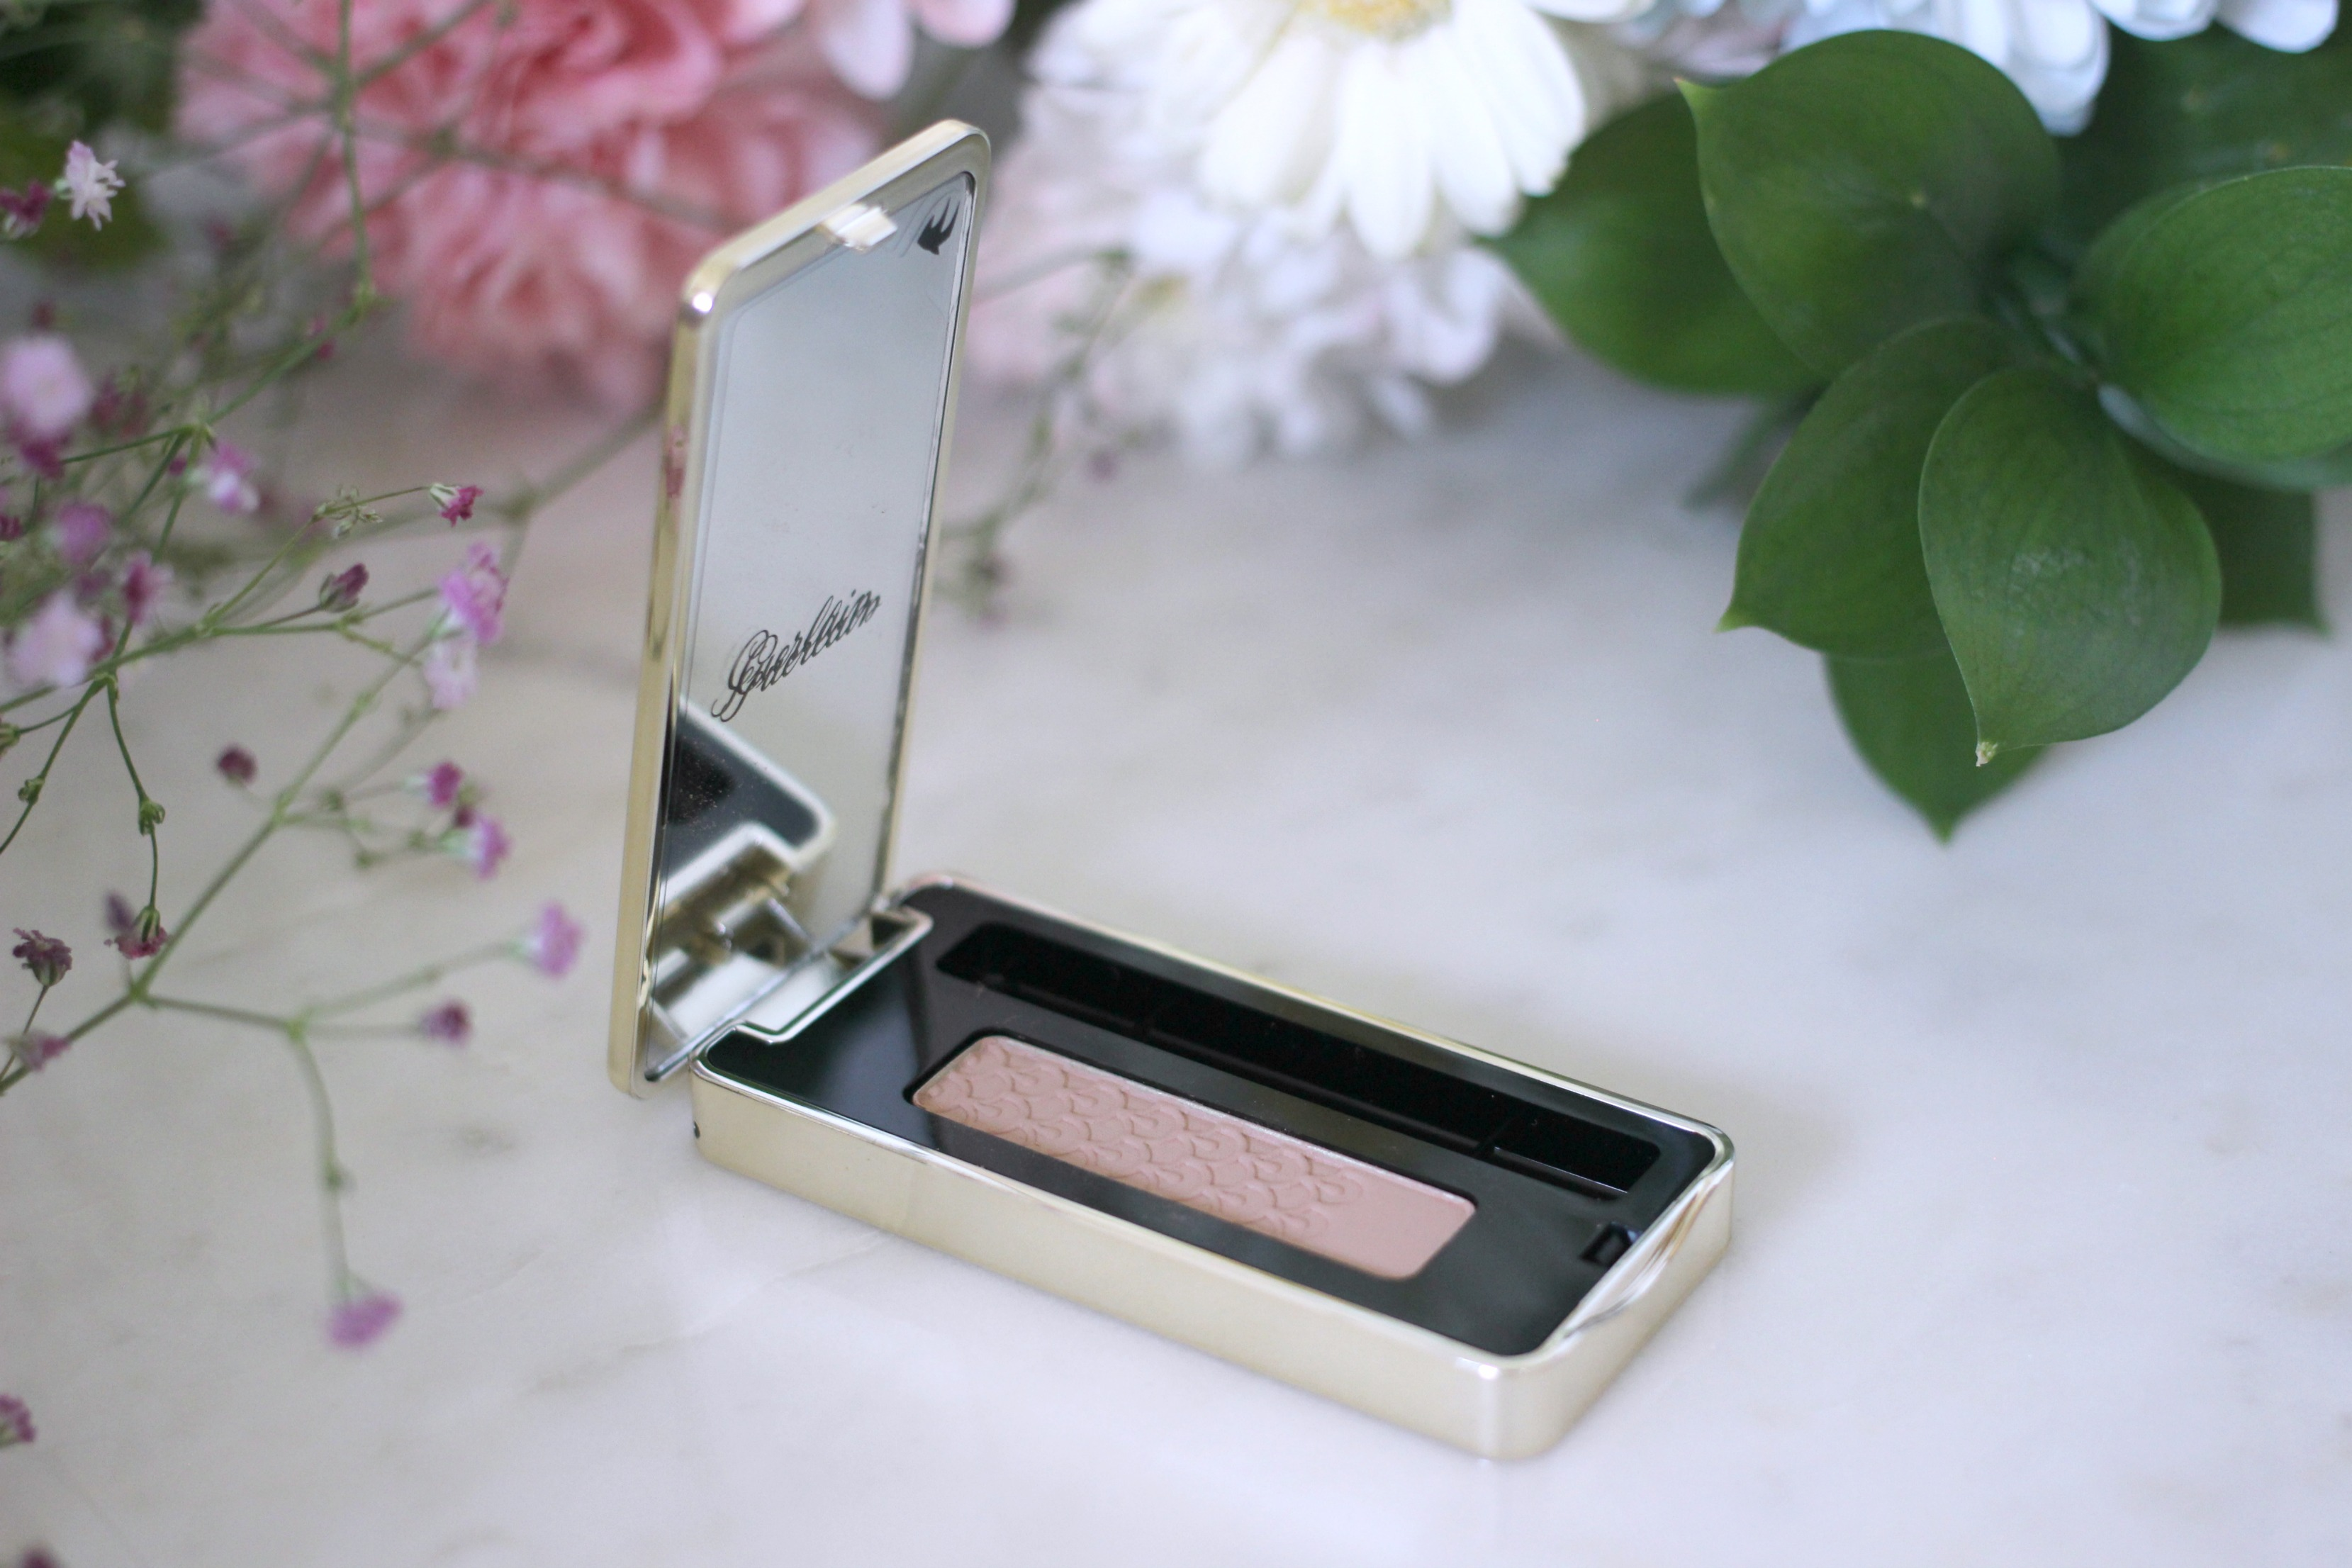 Guerlain Spring Summer Beauty Makeup Collection Review Eyeshadow